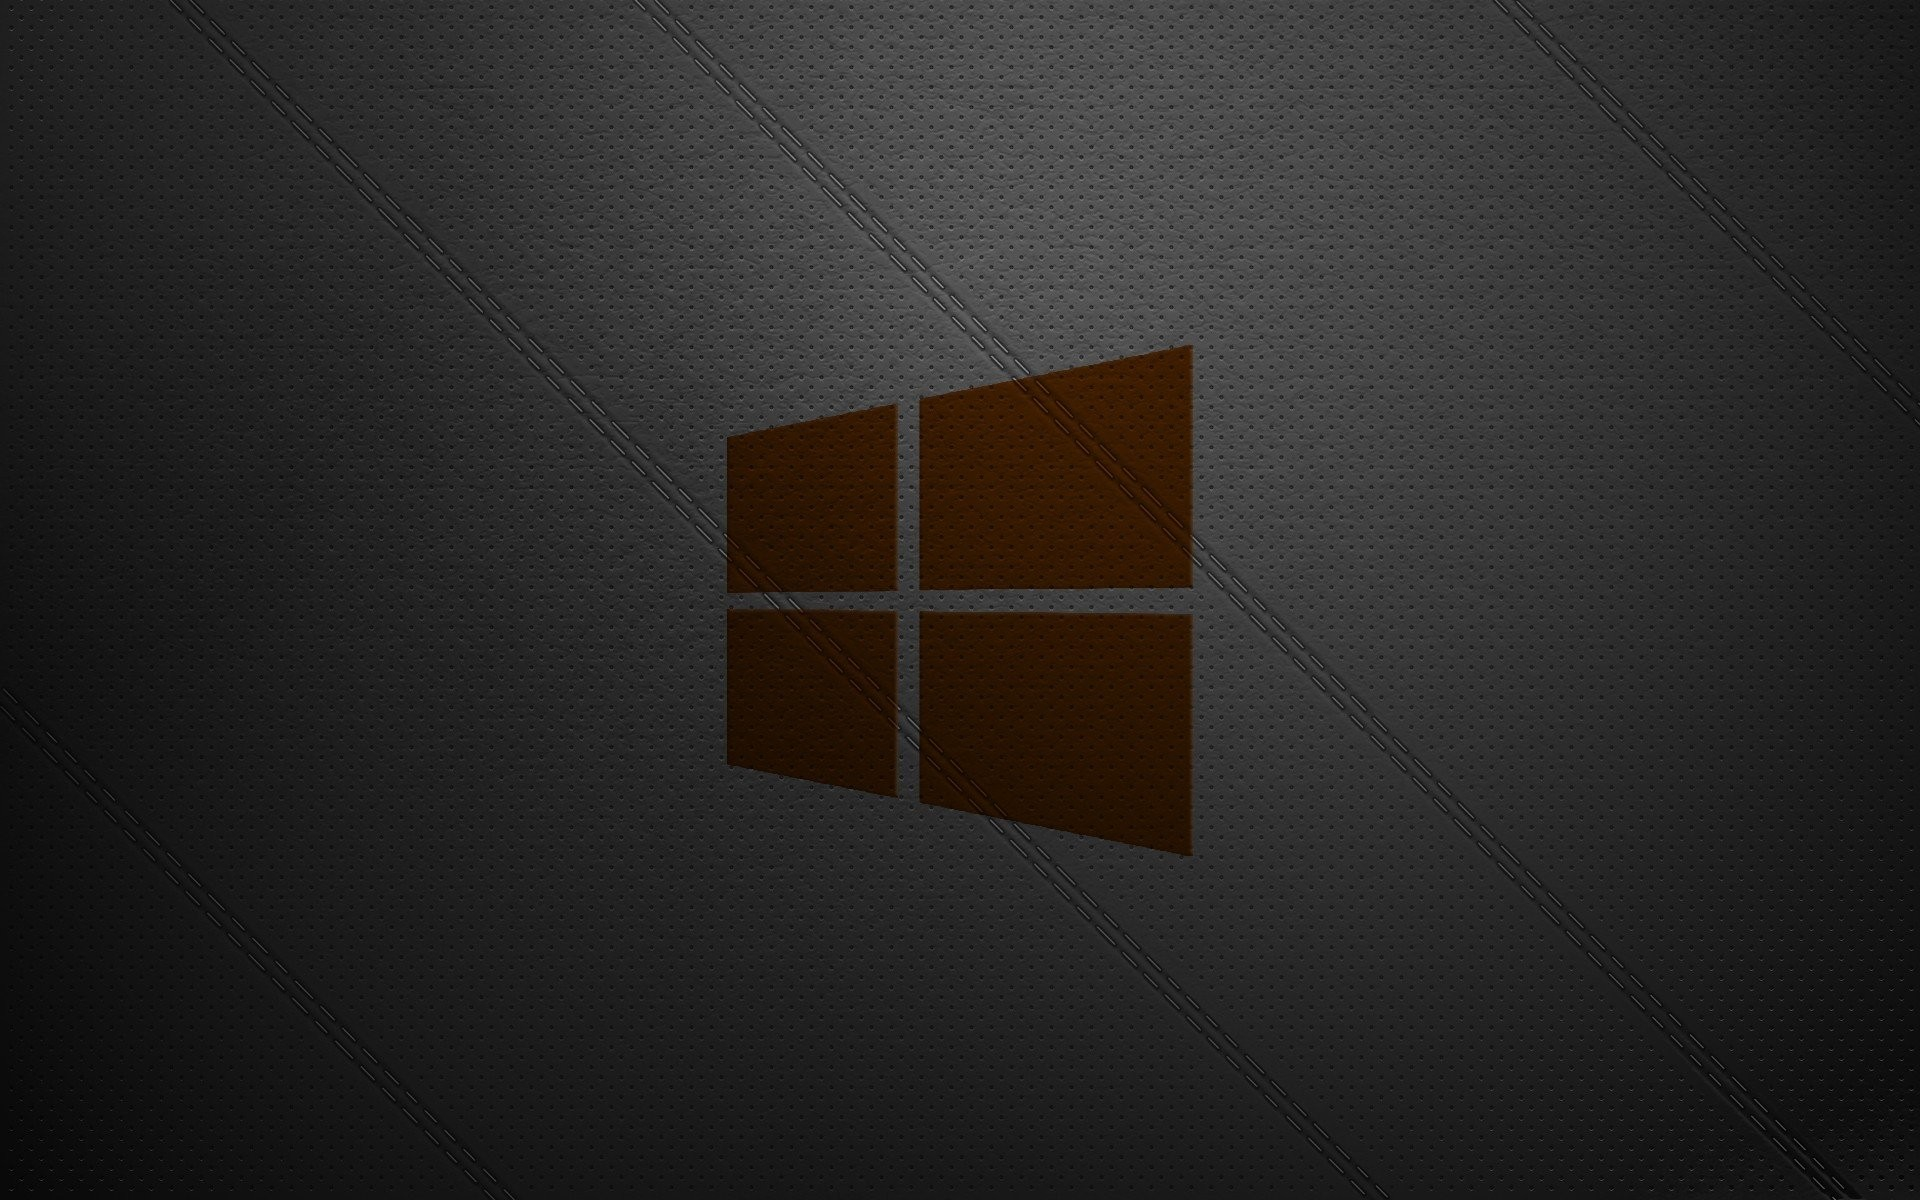 1920x1200 Leather Windows 8 window panes wallpaper |  | 311548 | WallpaperUP